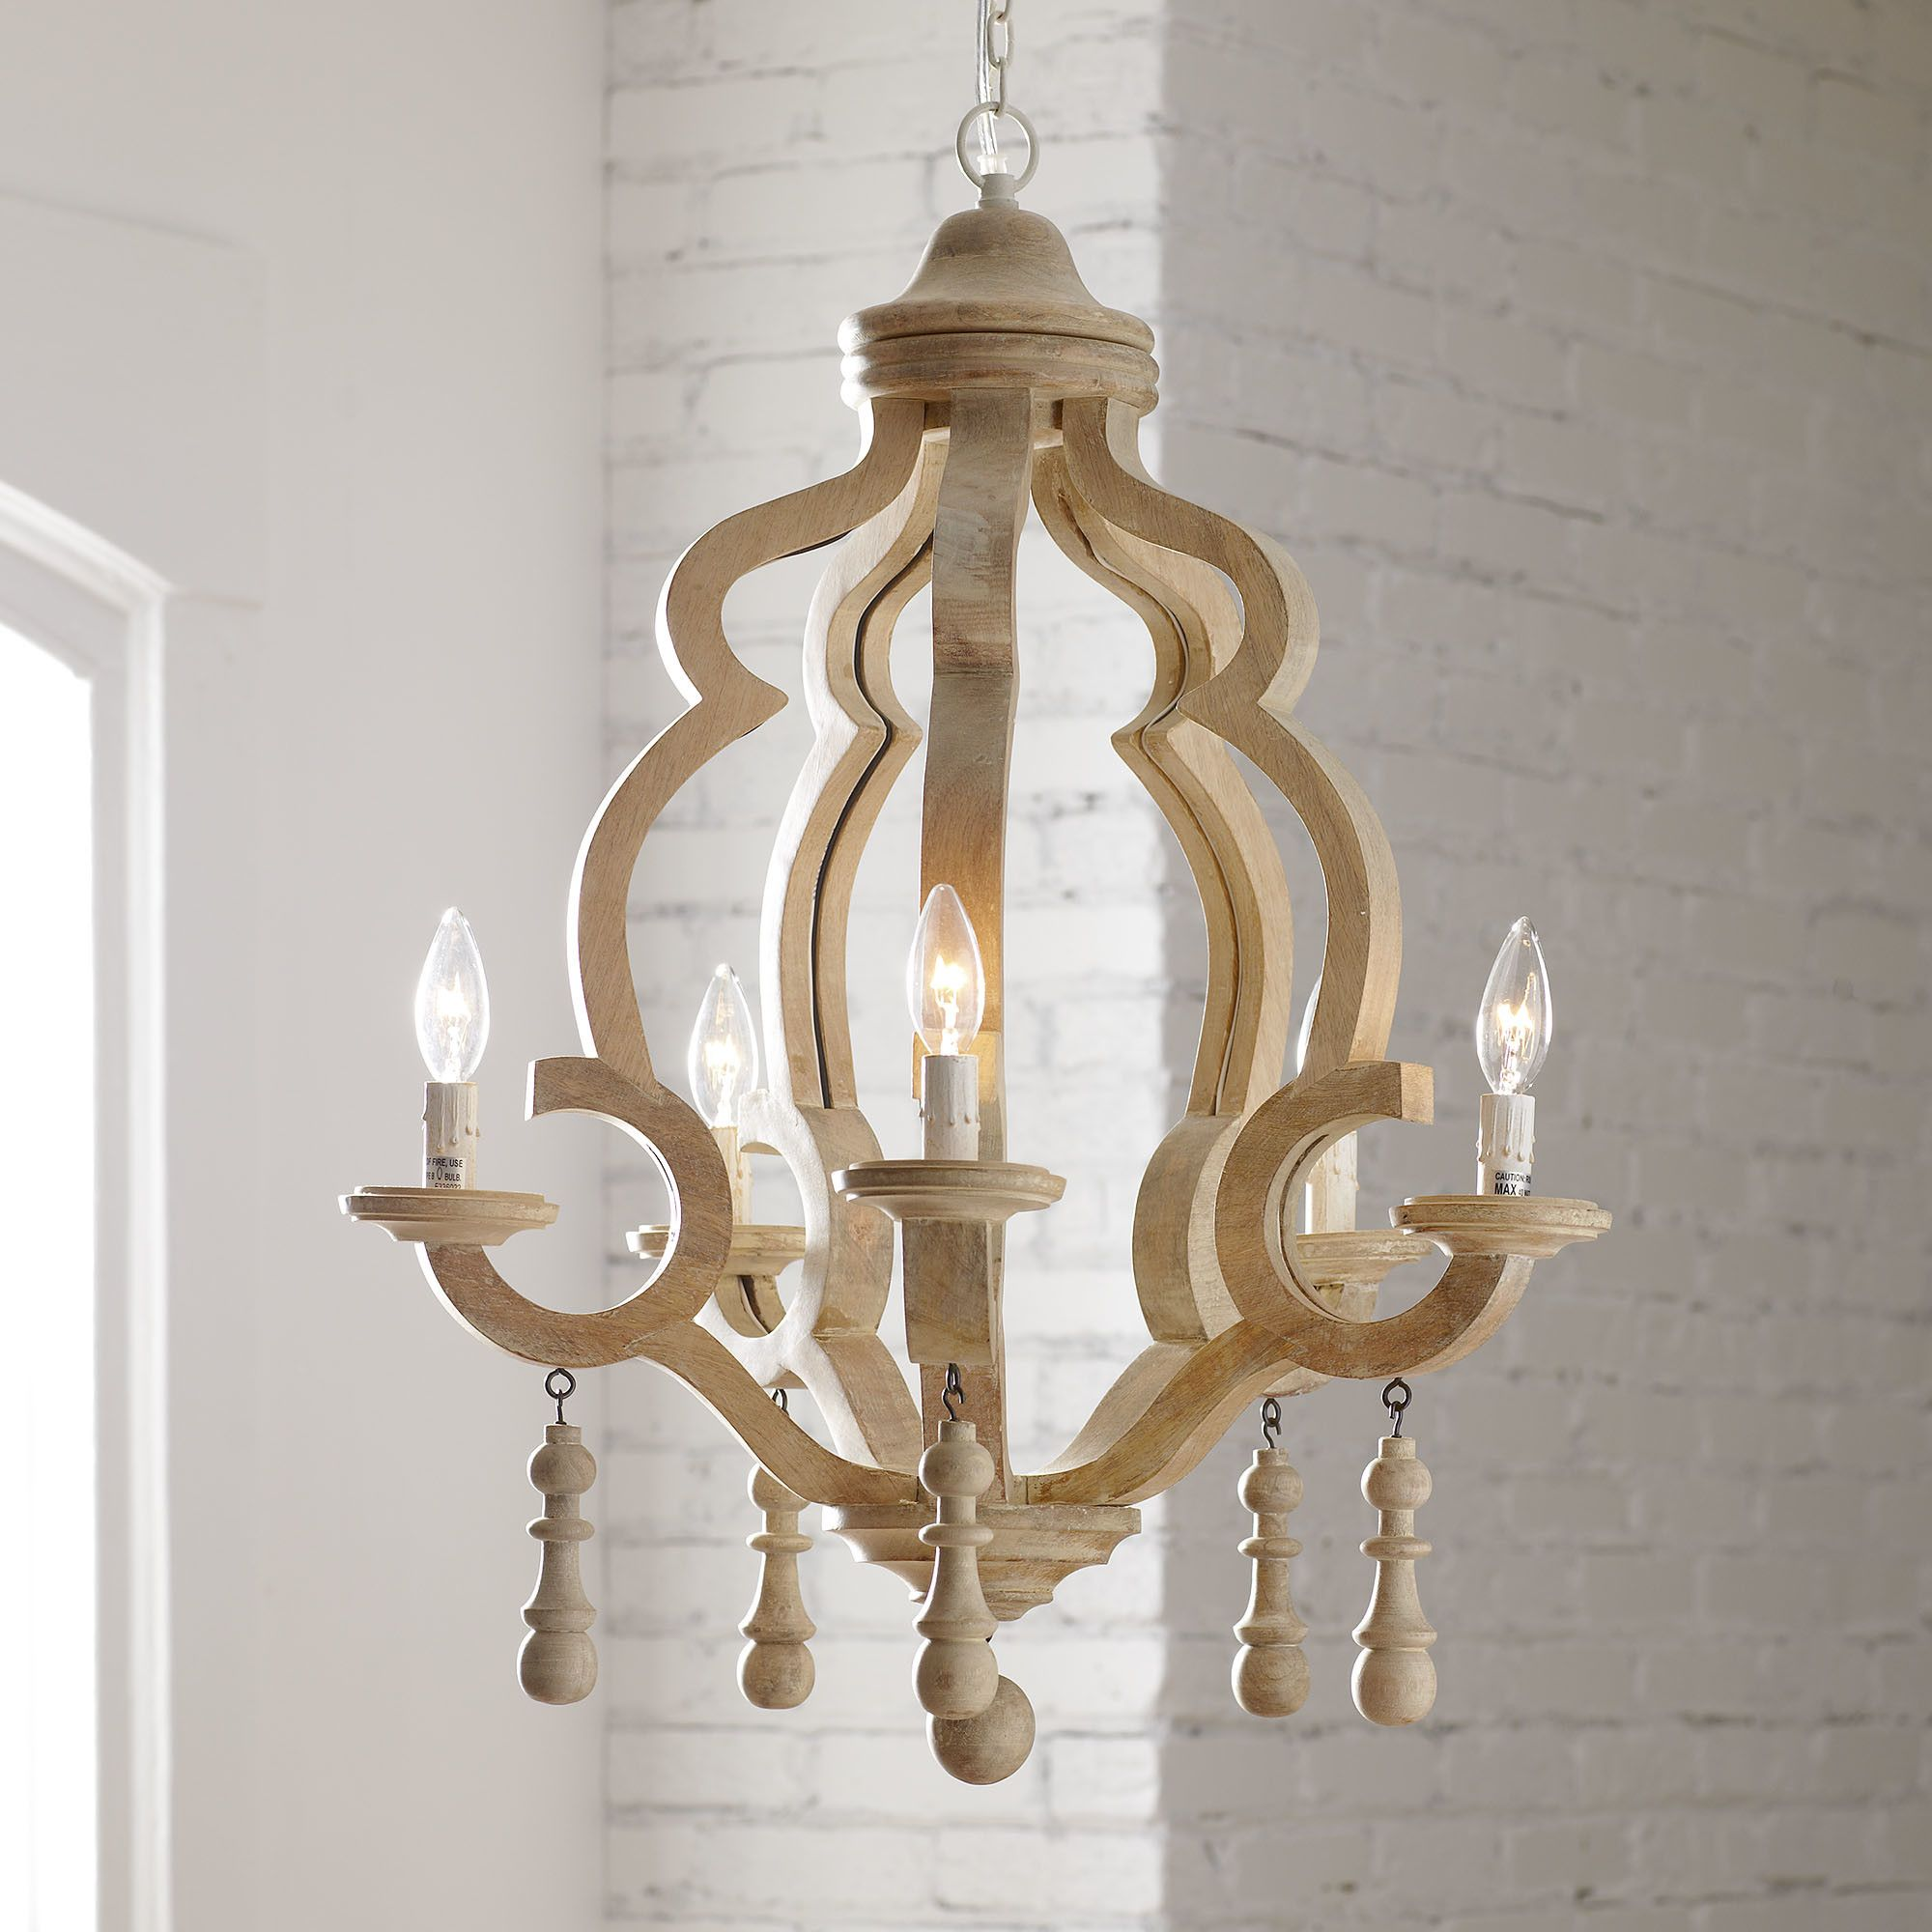 Caister Chandelier